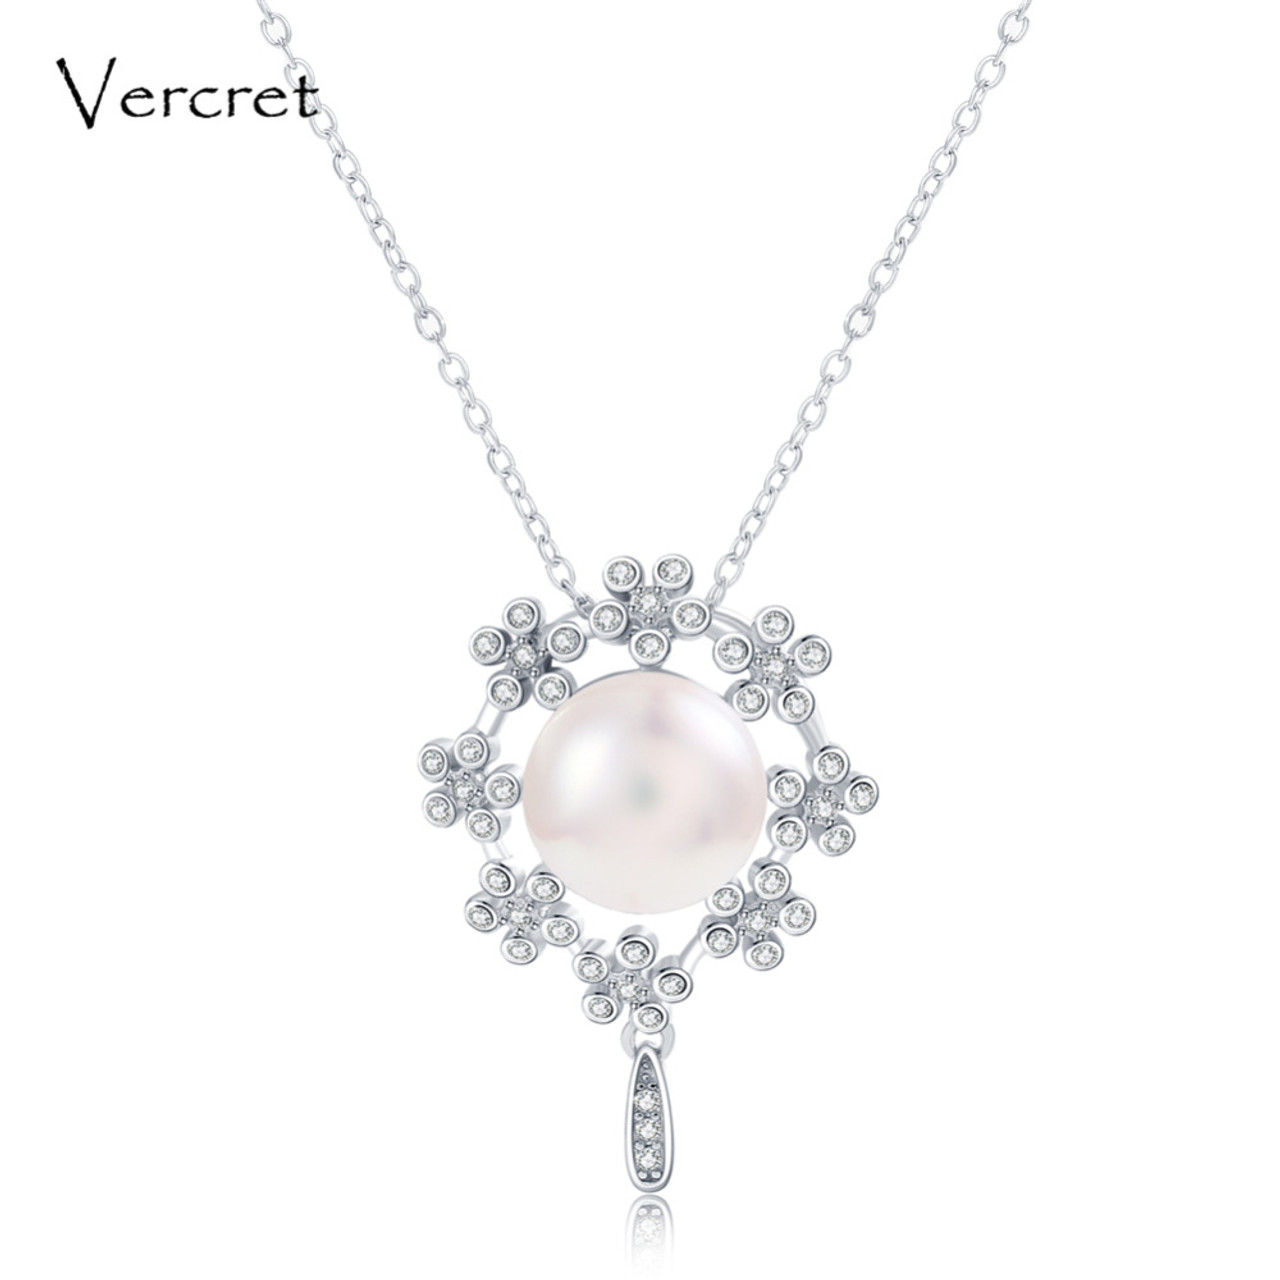 Vercret freshwater pearl pendant necklace with crystal in 925 vercret freshwater pearl pendant necklace with crystal in 925 sterling silver garland pearl jewelry wedding gift aloadofball Gallery